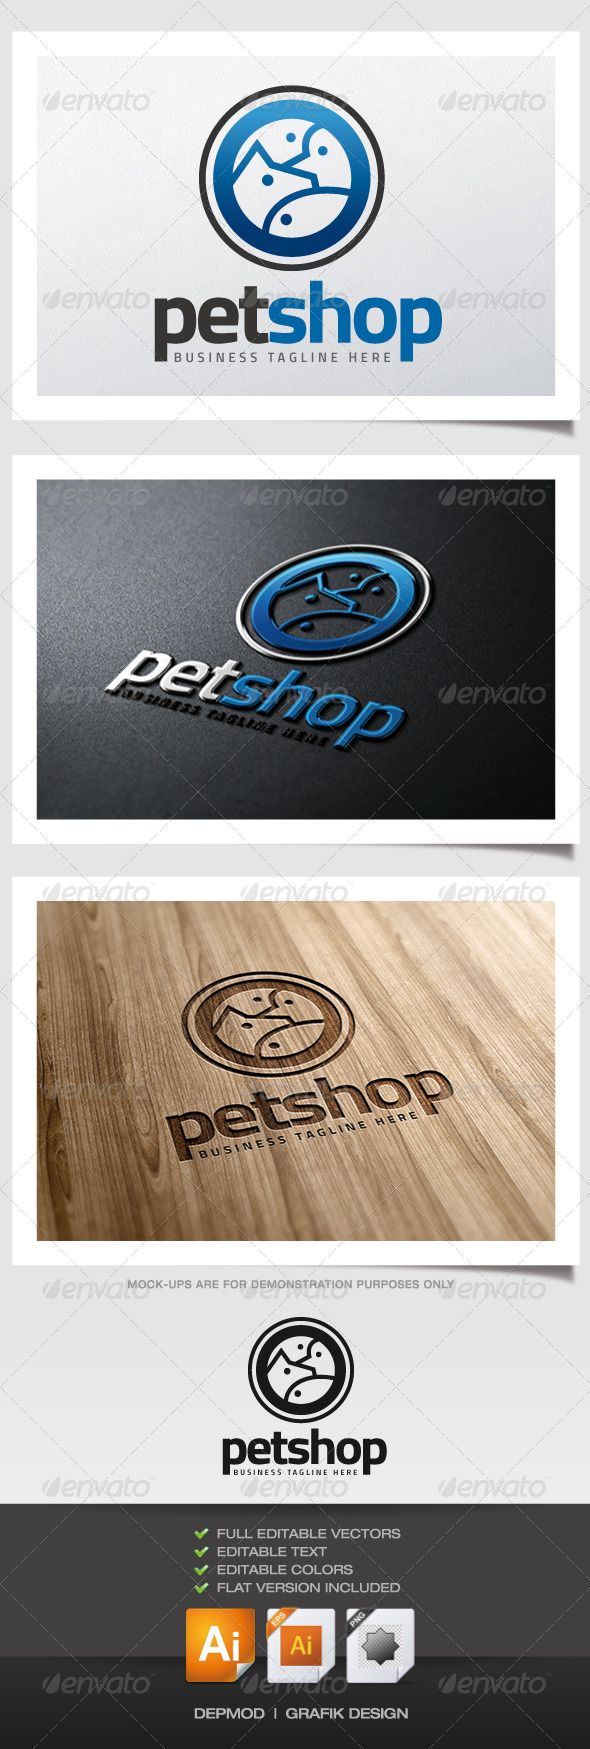 Pet Shop V.03 Logo - Animals Logo Templates